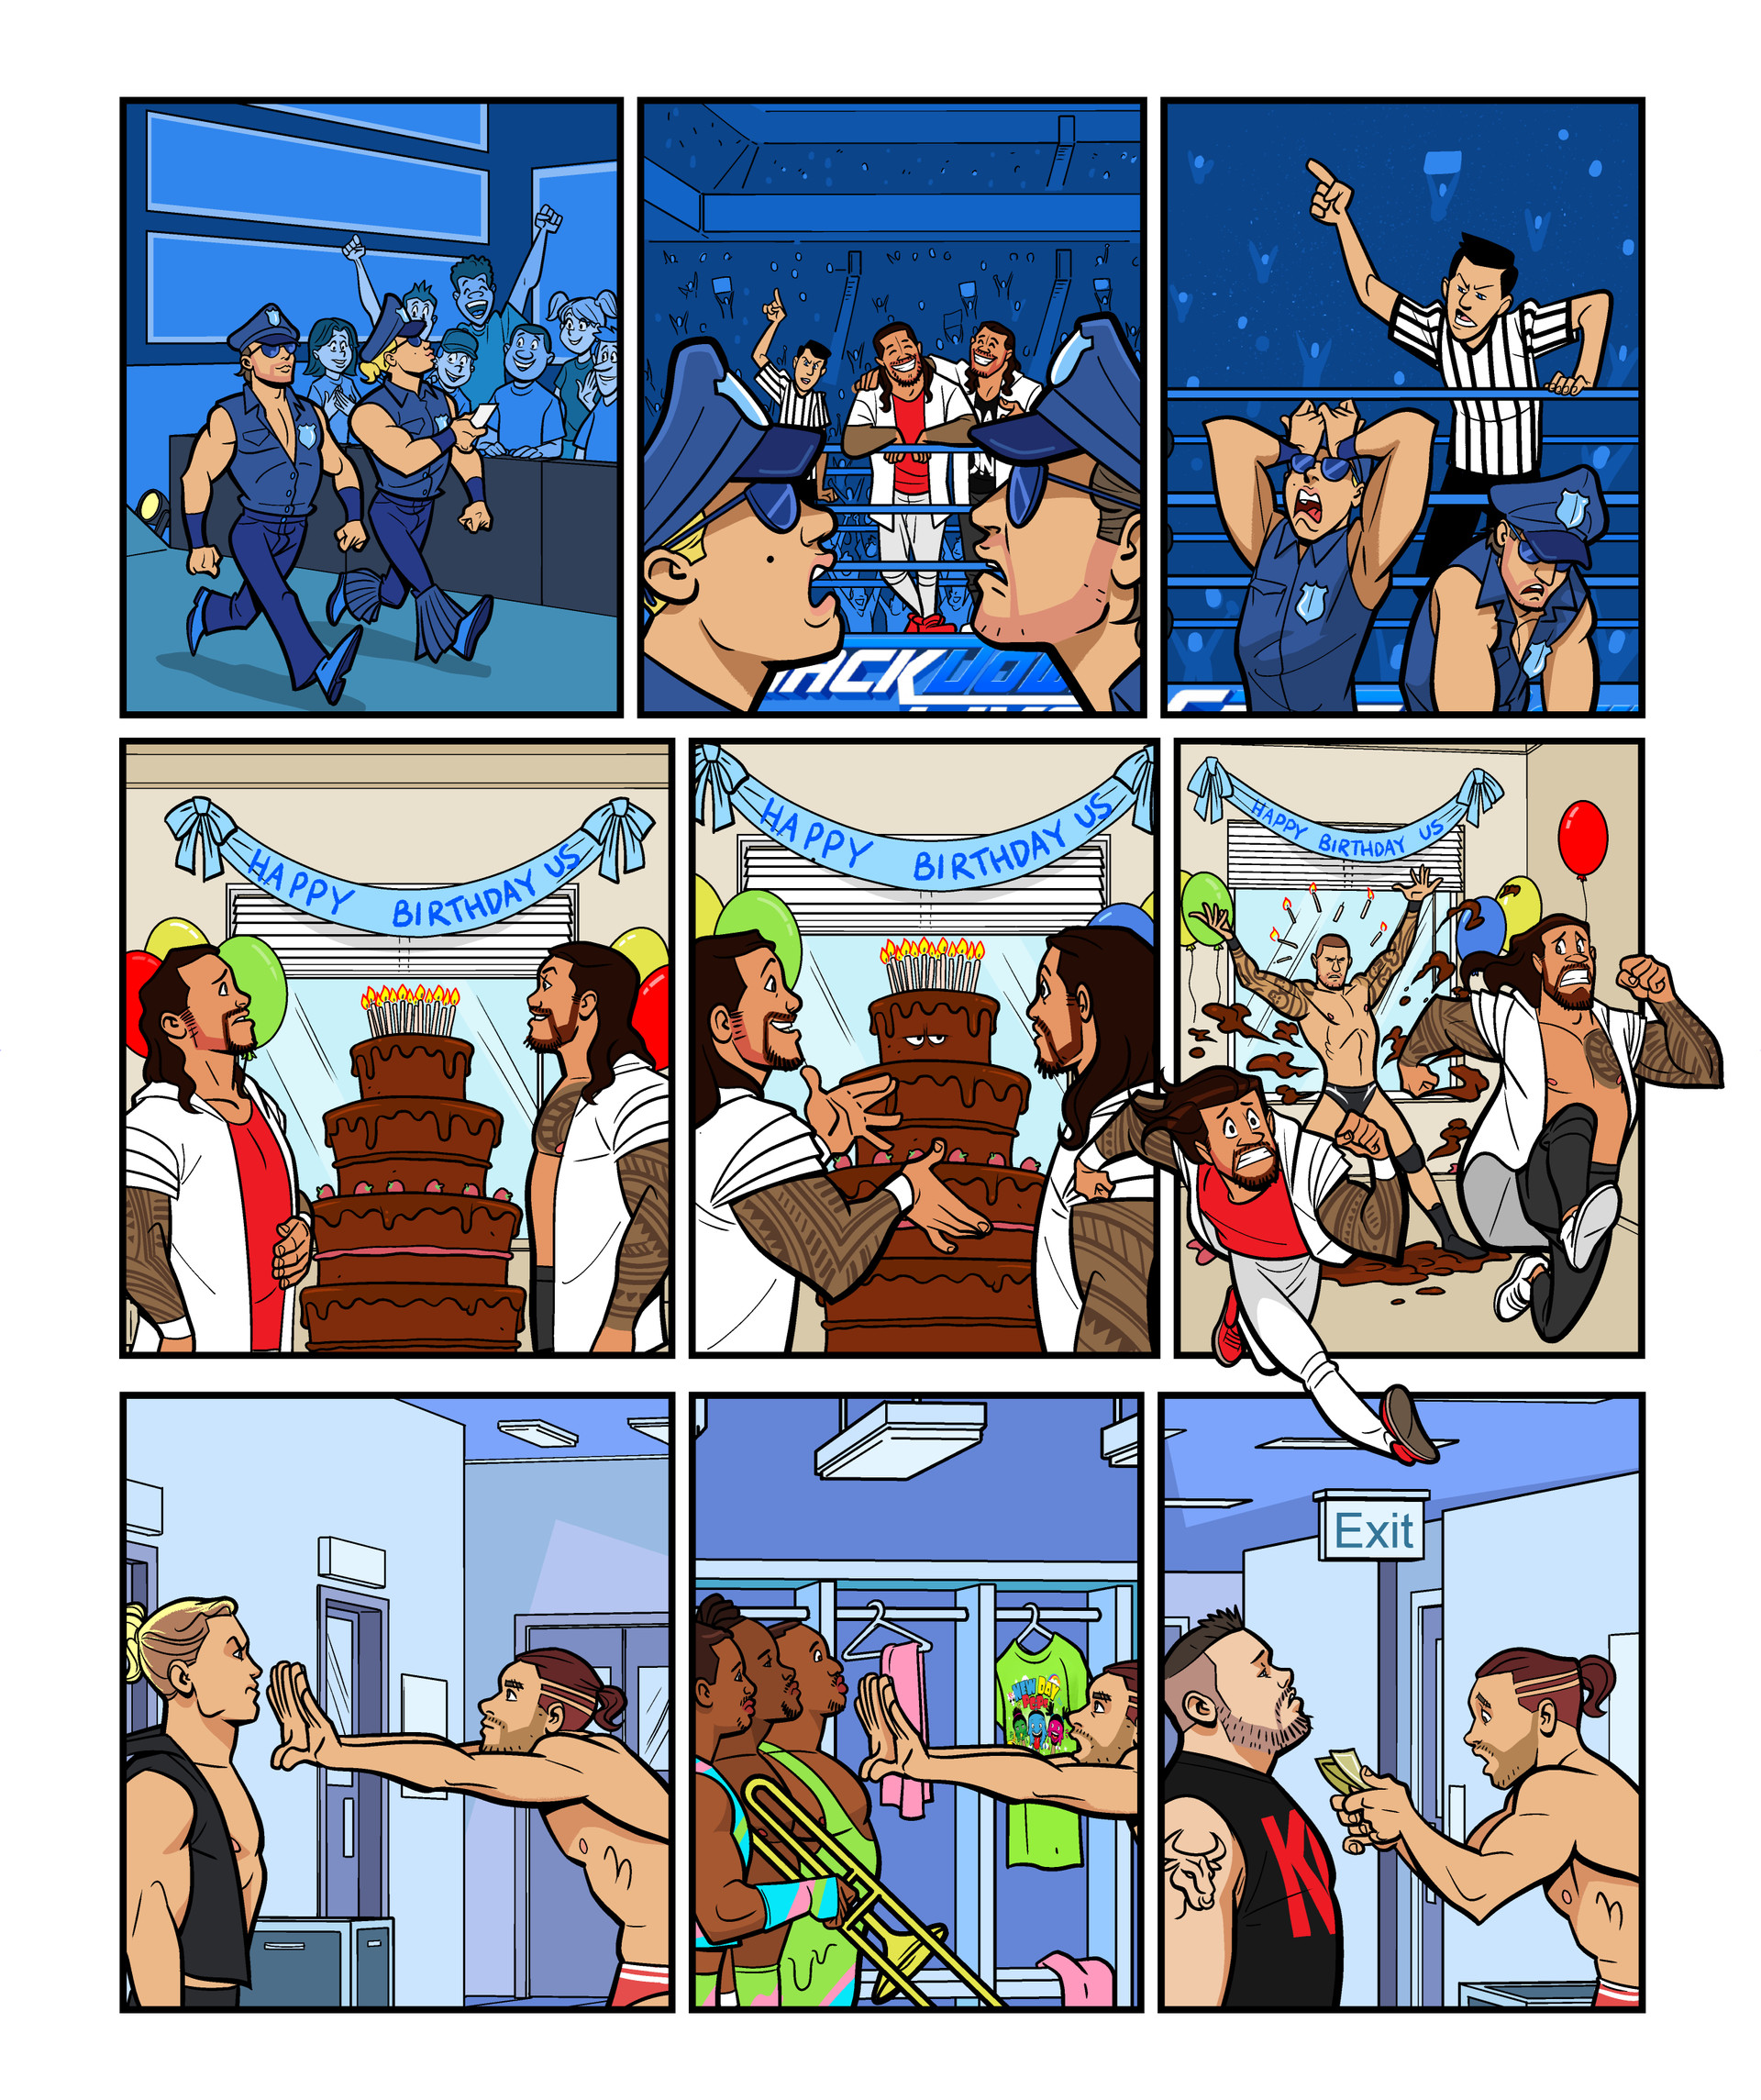 WWE Smackdown Live comic strips for WWE Kids Magazine #125